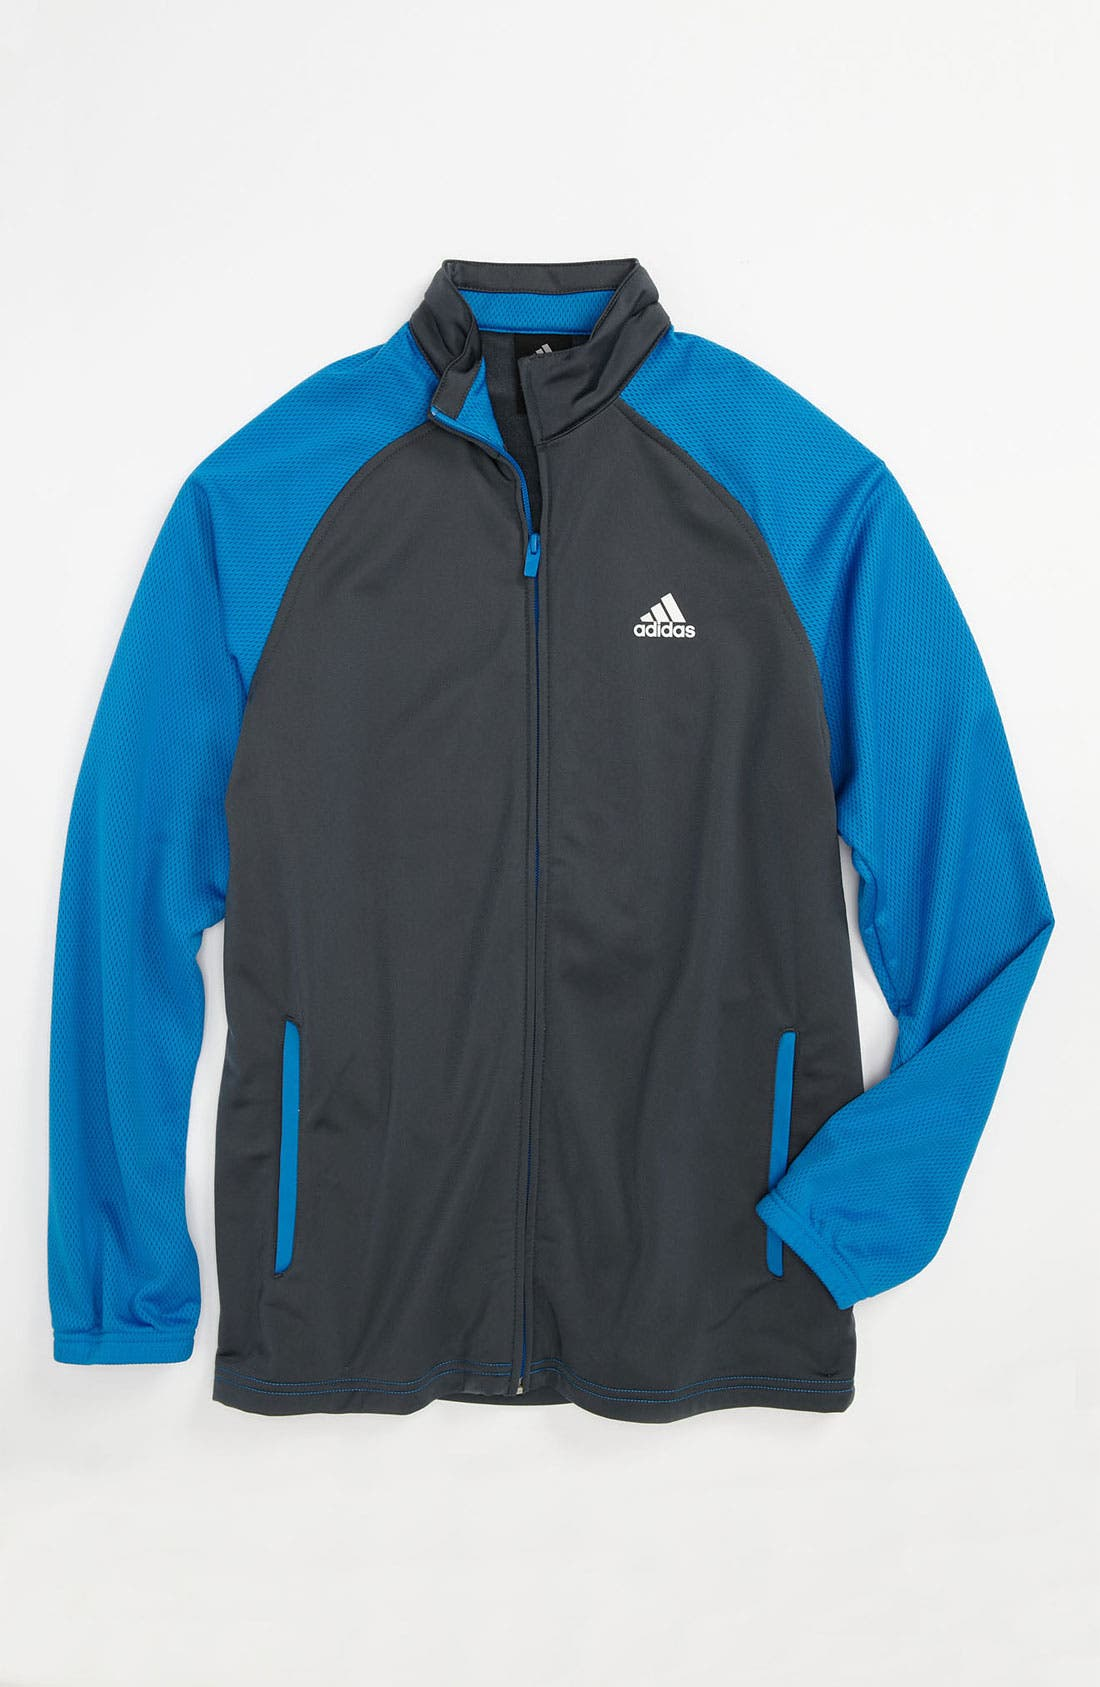 Main Image - adidas 'Pro Model' Jacket (Big Boys)